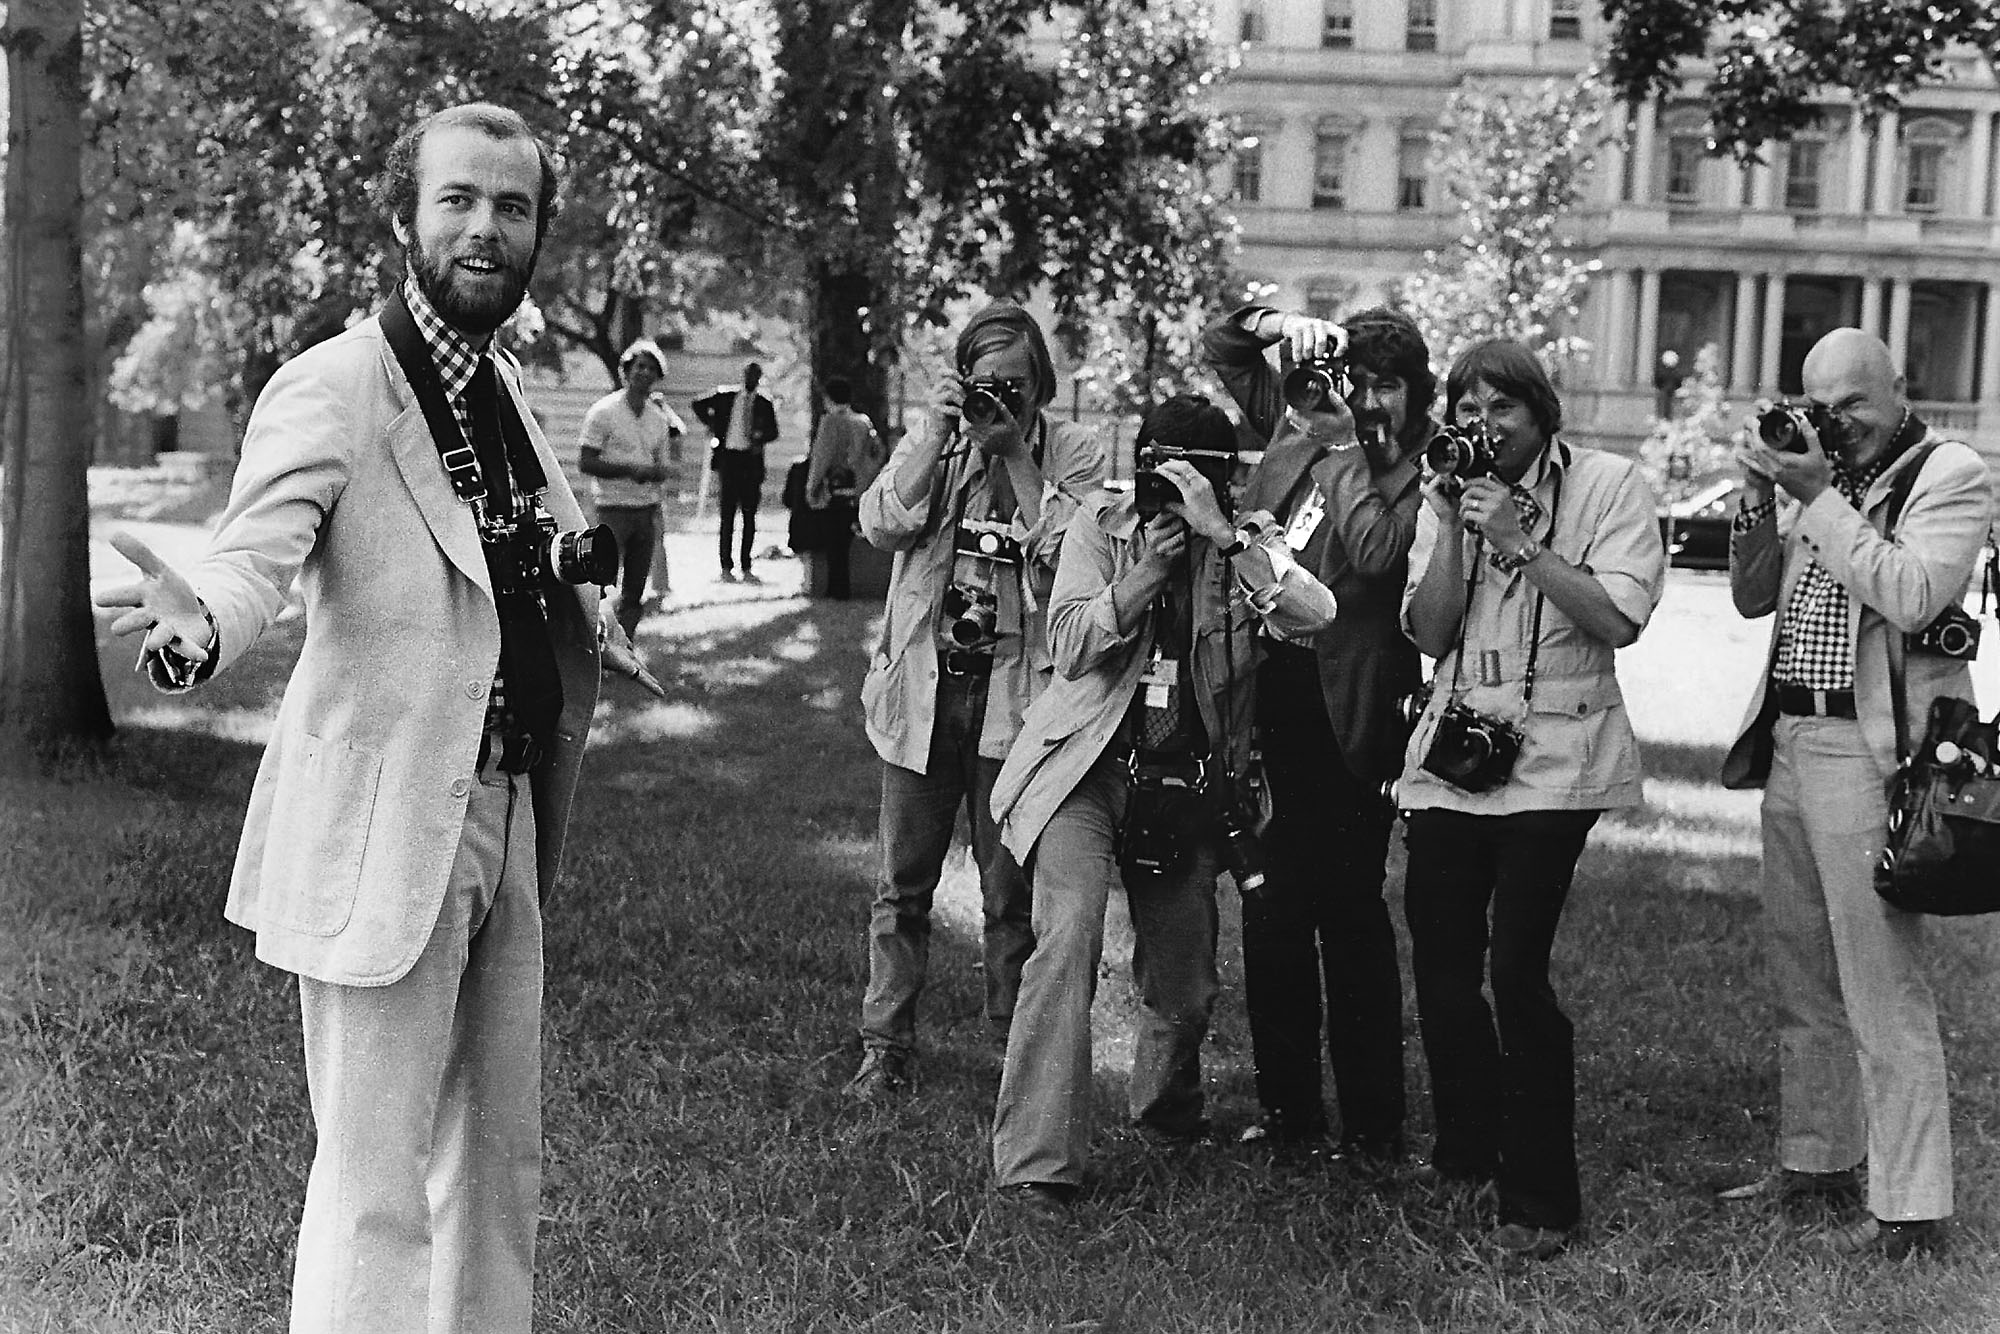 David Hume Kennerly, Photographer, and His Colleagues, White House Lawn, Washington, D.C.